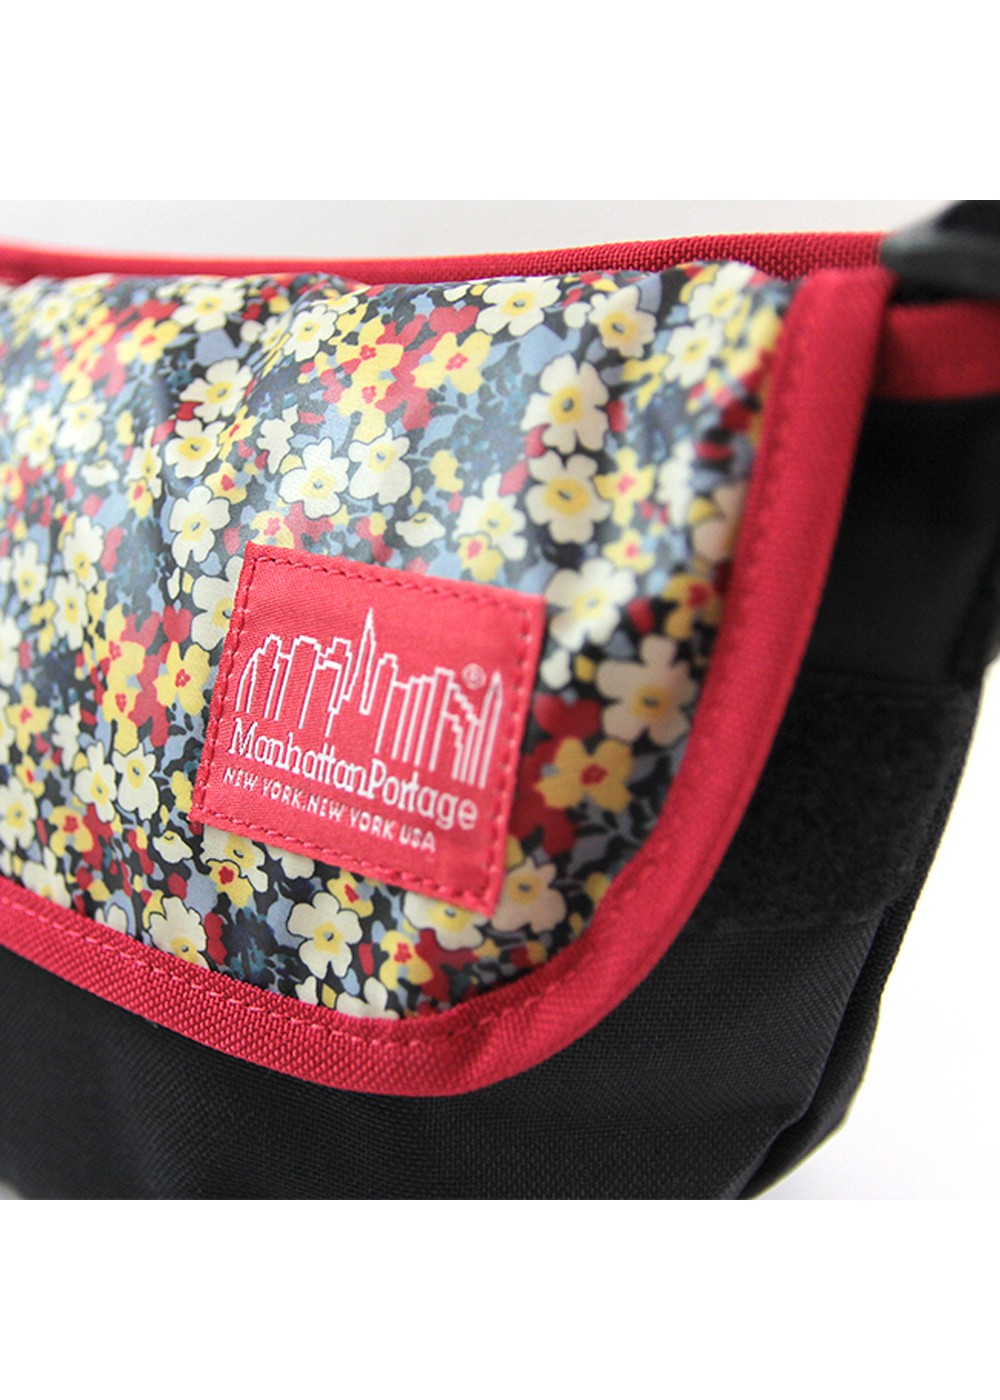 【5/15新着】Liberty Art Fabric Casual Messenger Bag|ブラック/レッド|ショルダーバッグ|Manhattan Portage